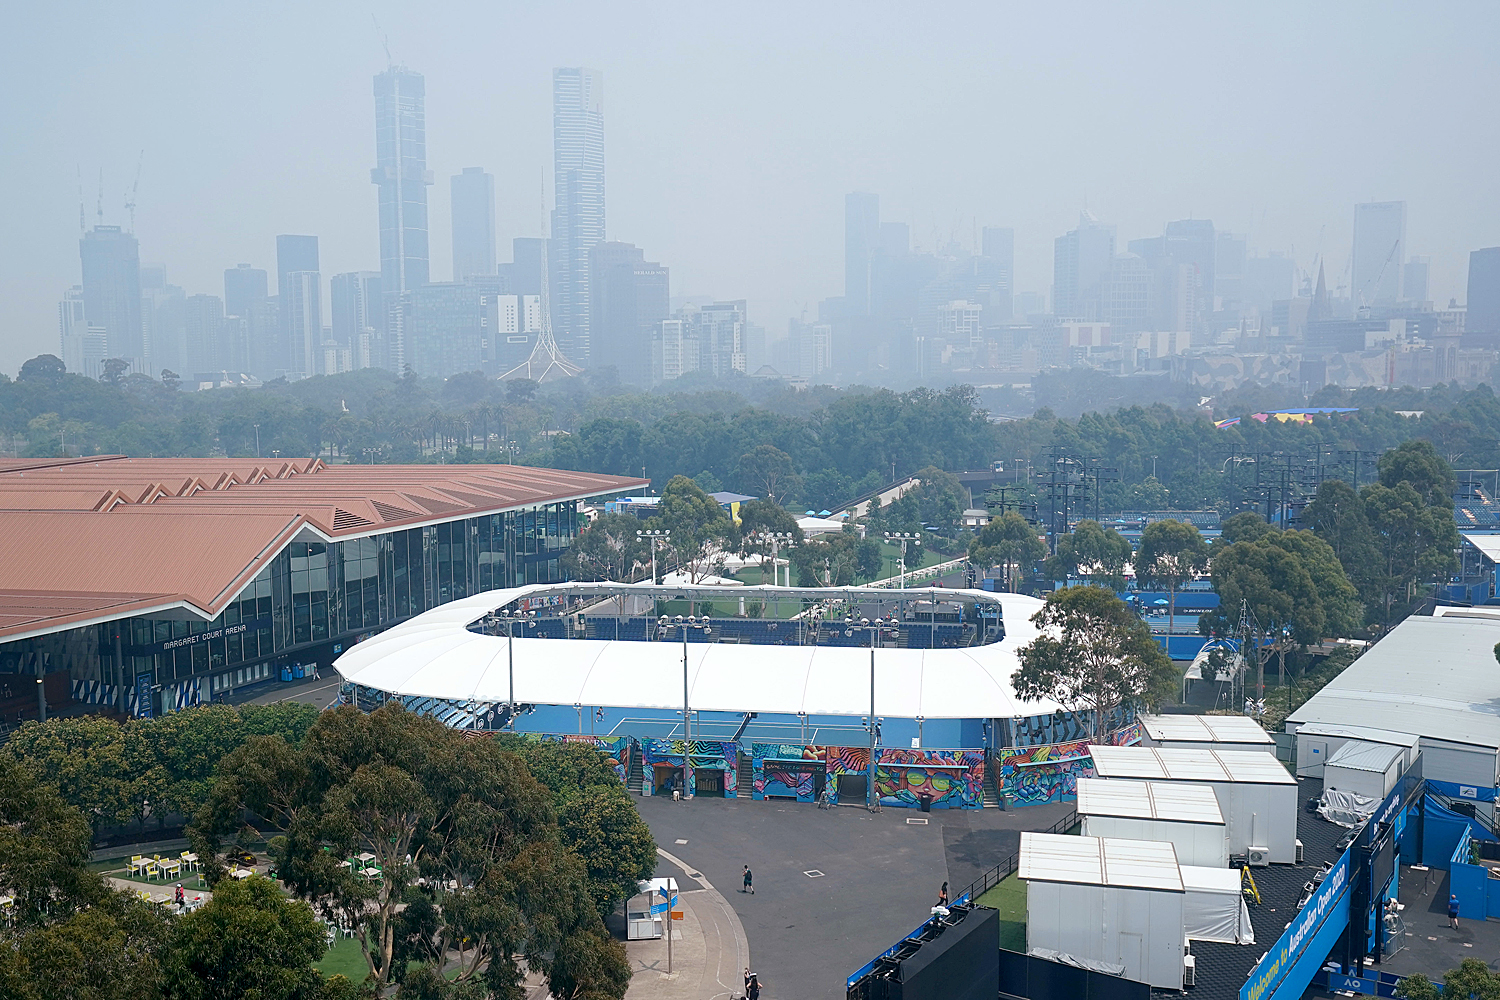 Haze covers the skyline during practice sessions at the Australian Open at Melbourne Park